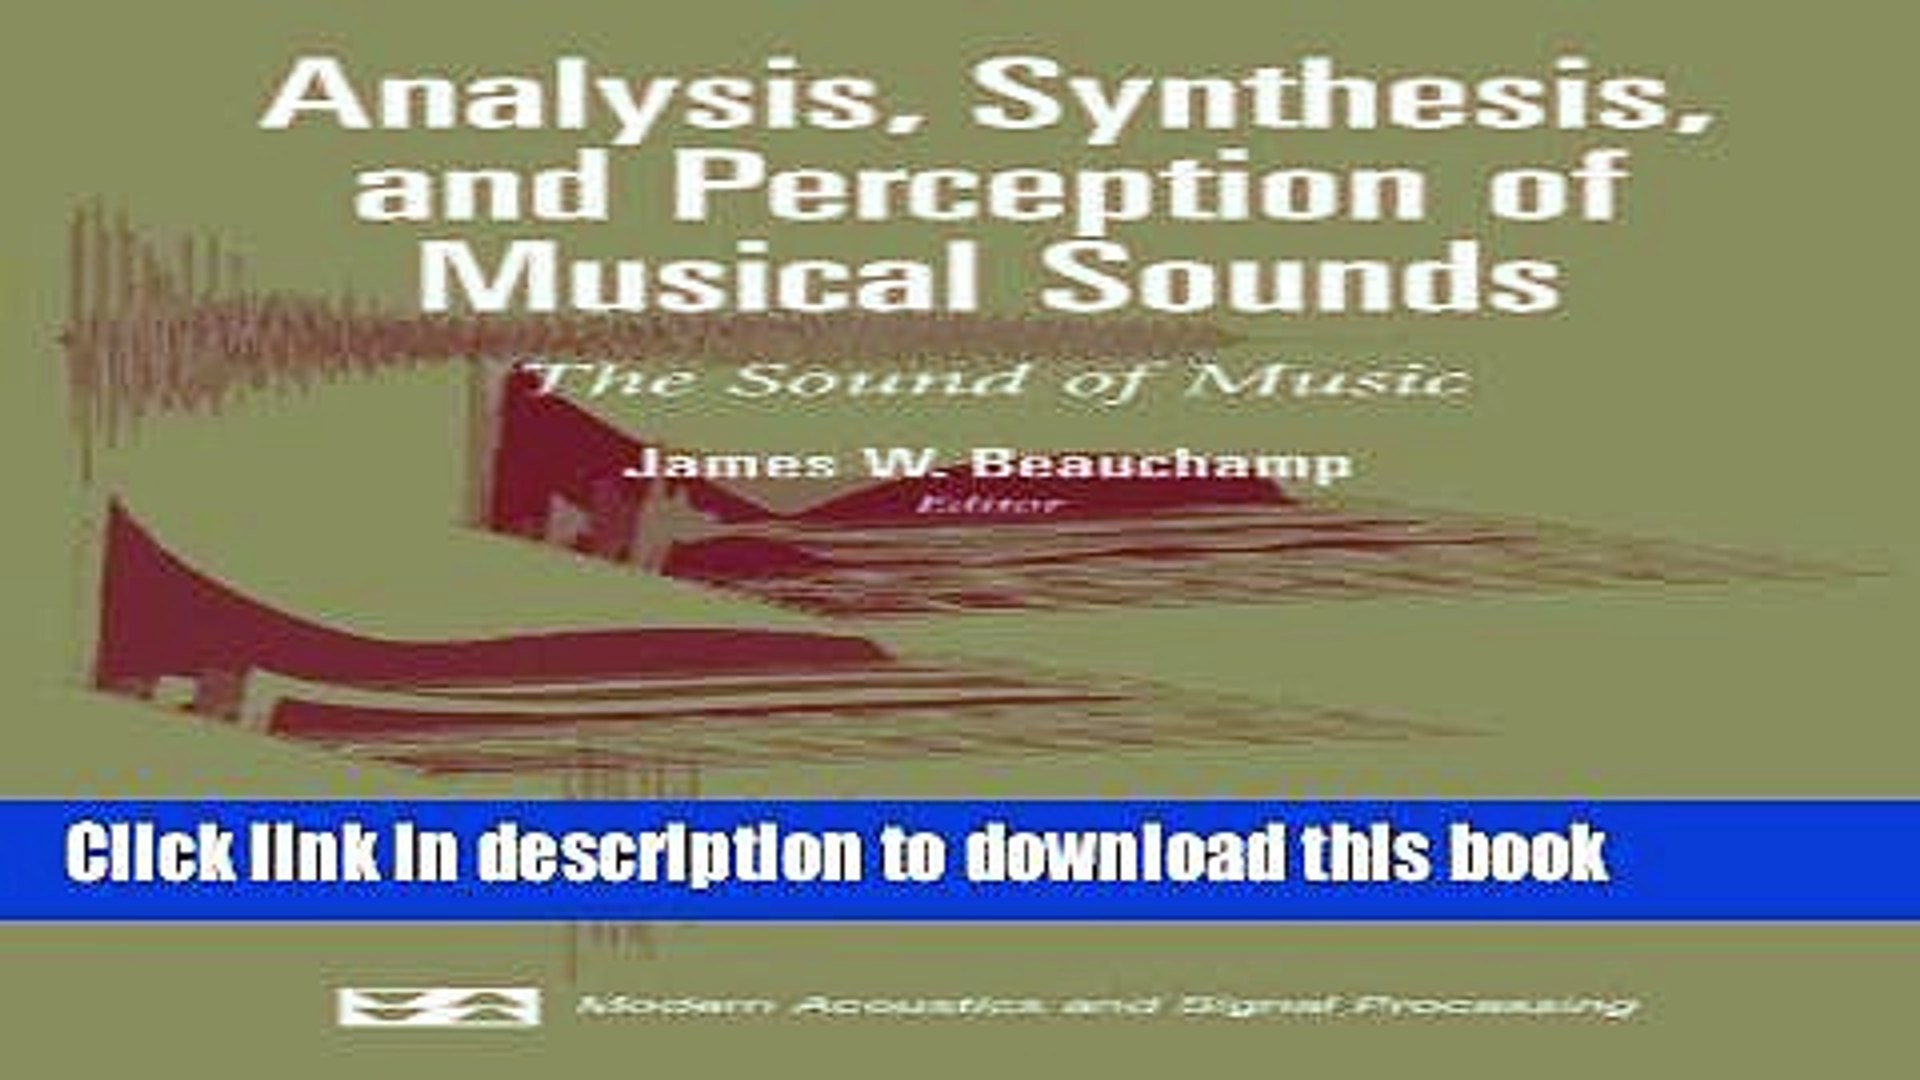 Books Analysis, Synthesis, and Perception of Musical Sounds: The Sound of Music Free Online